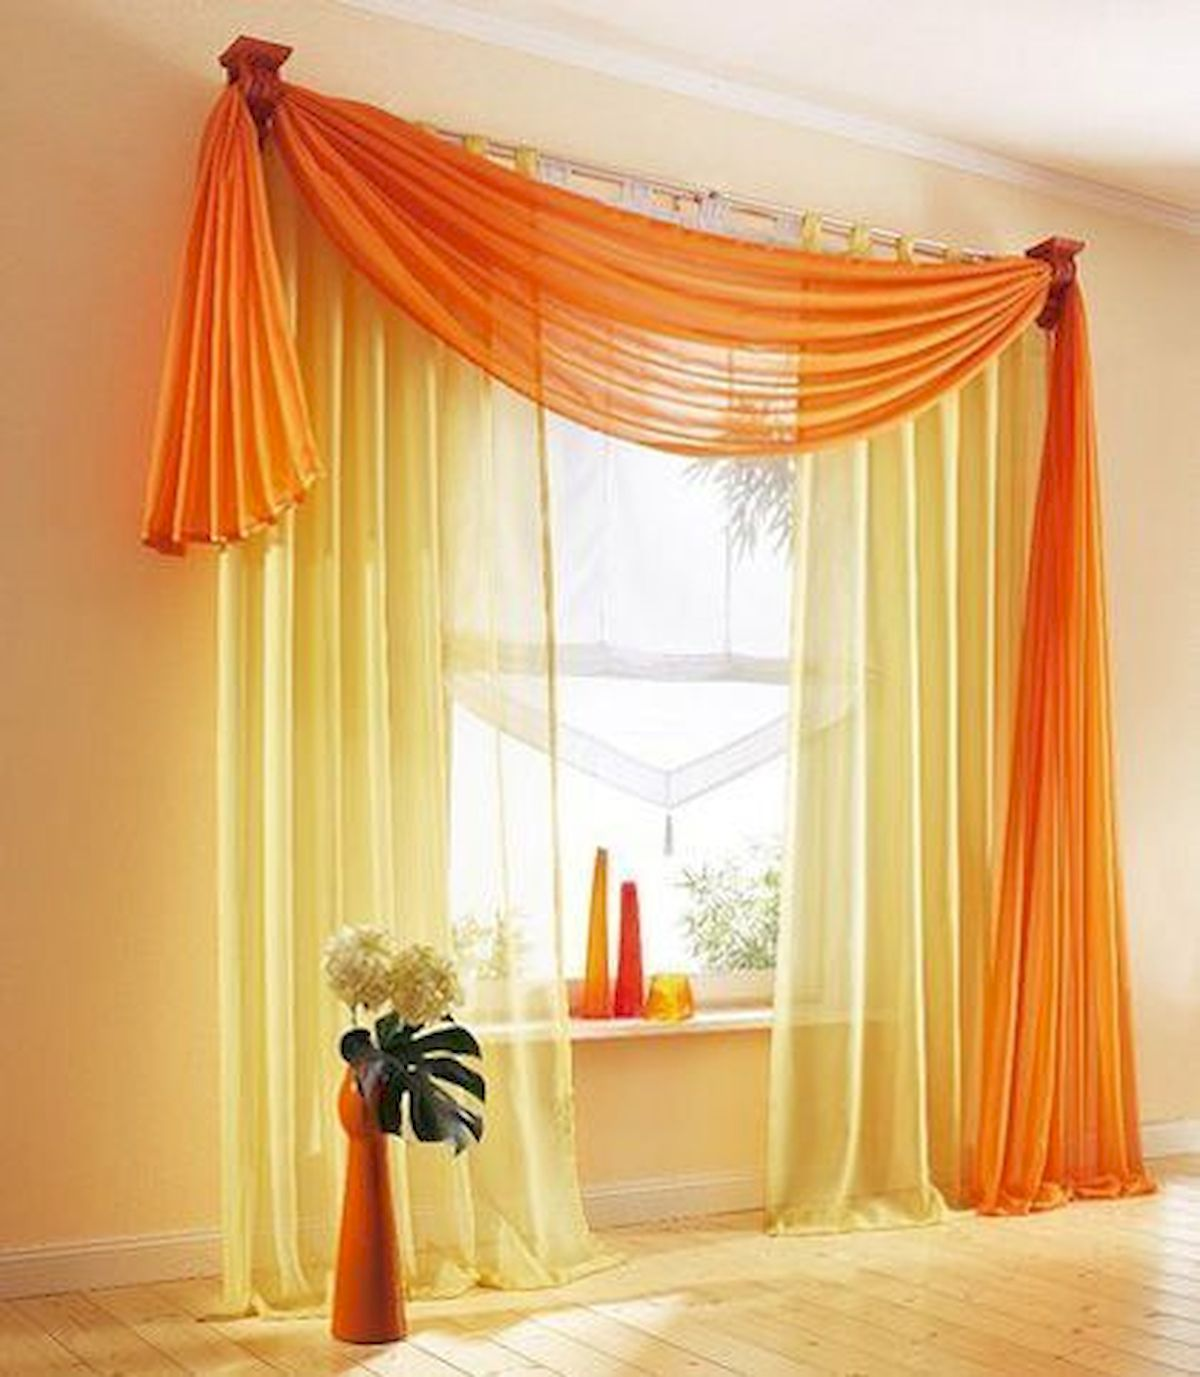 65 Adorable Window Curtains Design Ideas And Decor (53)